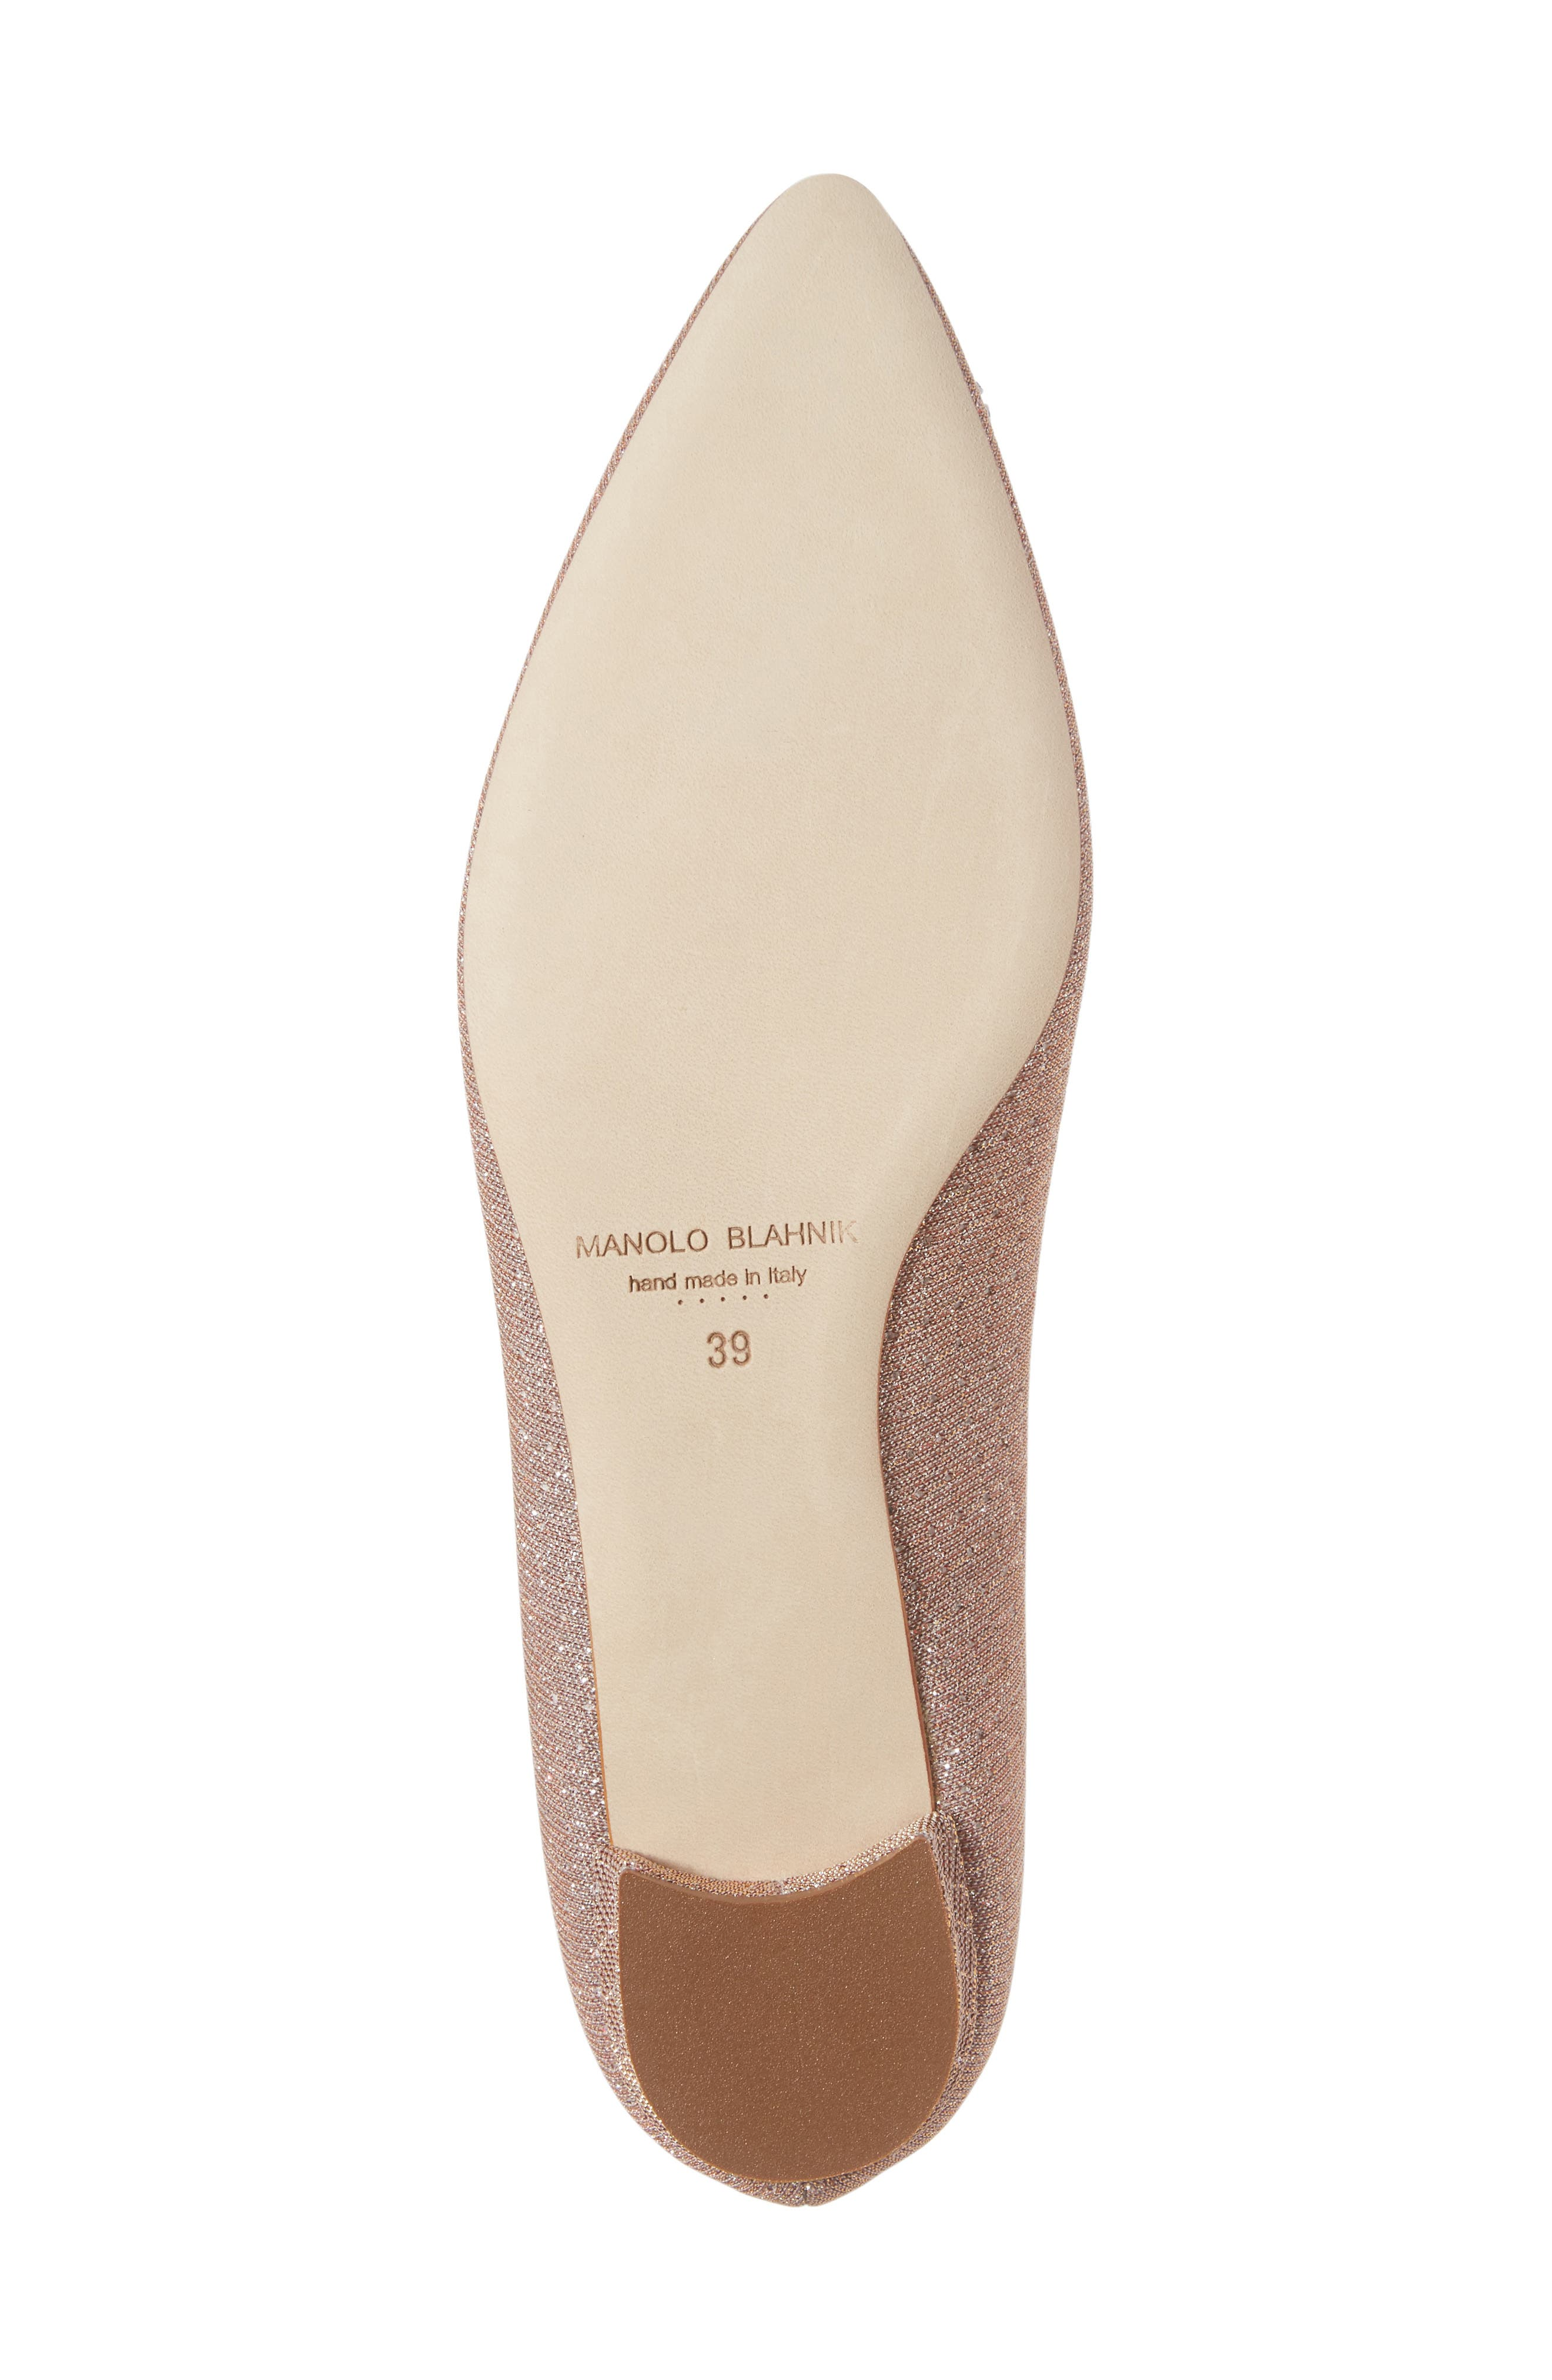 MANOLO BLAHNIK,                             'Hangisi' Jeweled Pointy Toe Flat,                             Alternate thumbnail 6, color,                             CHAMPAGNE FABRIC